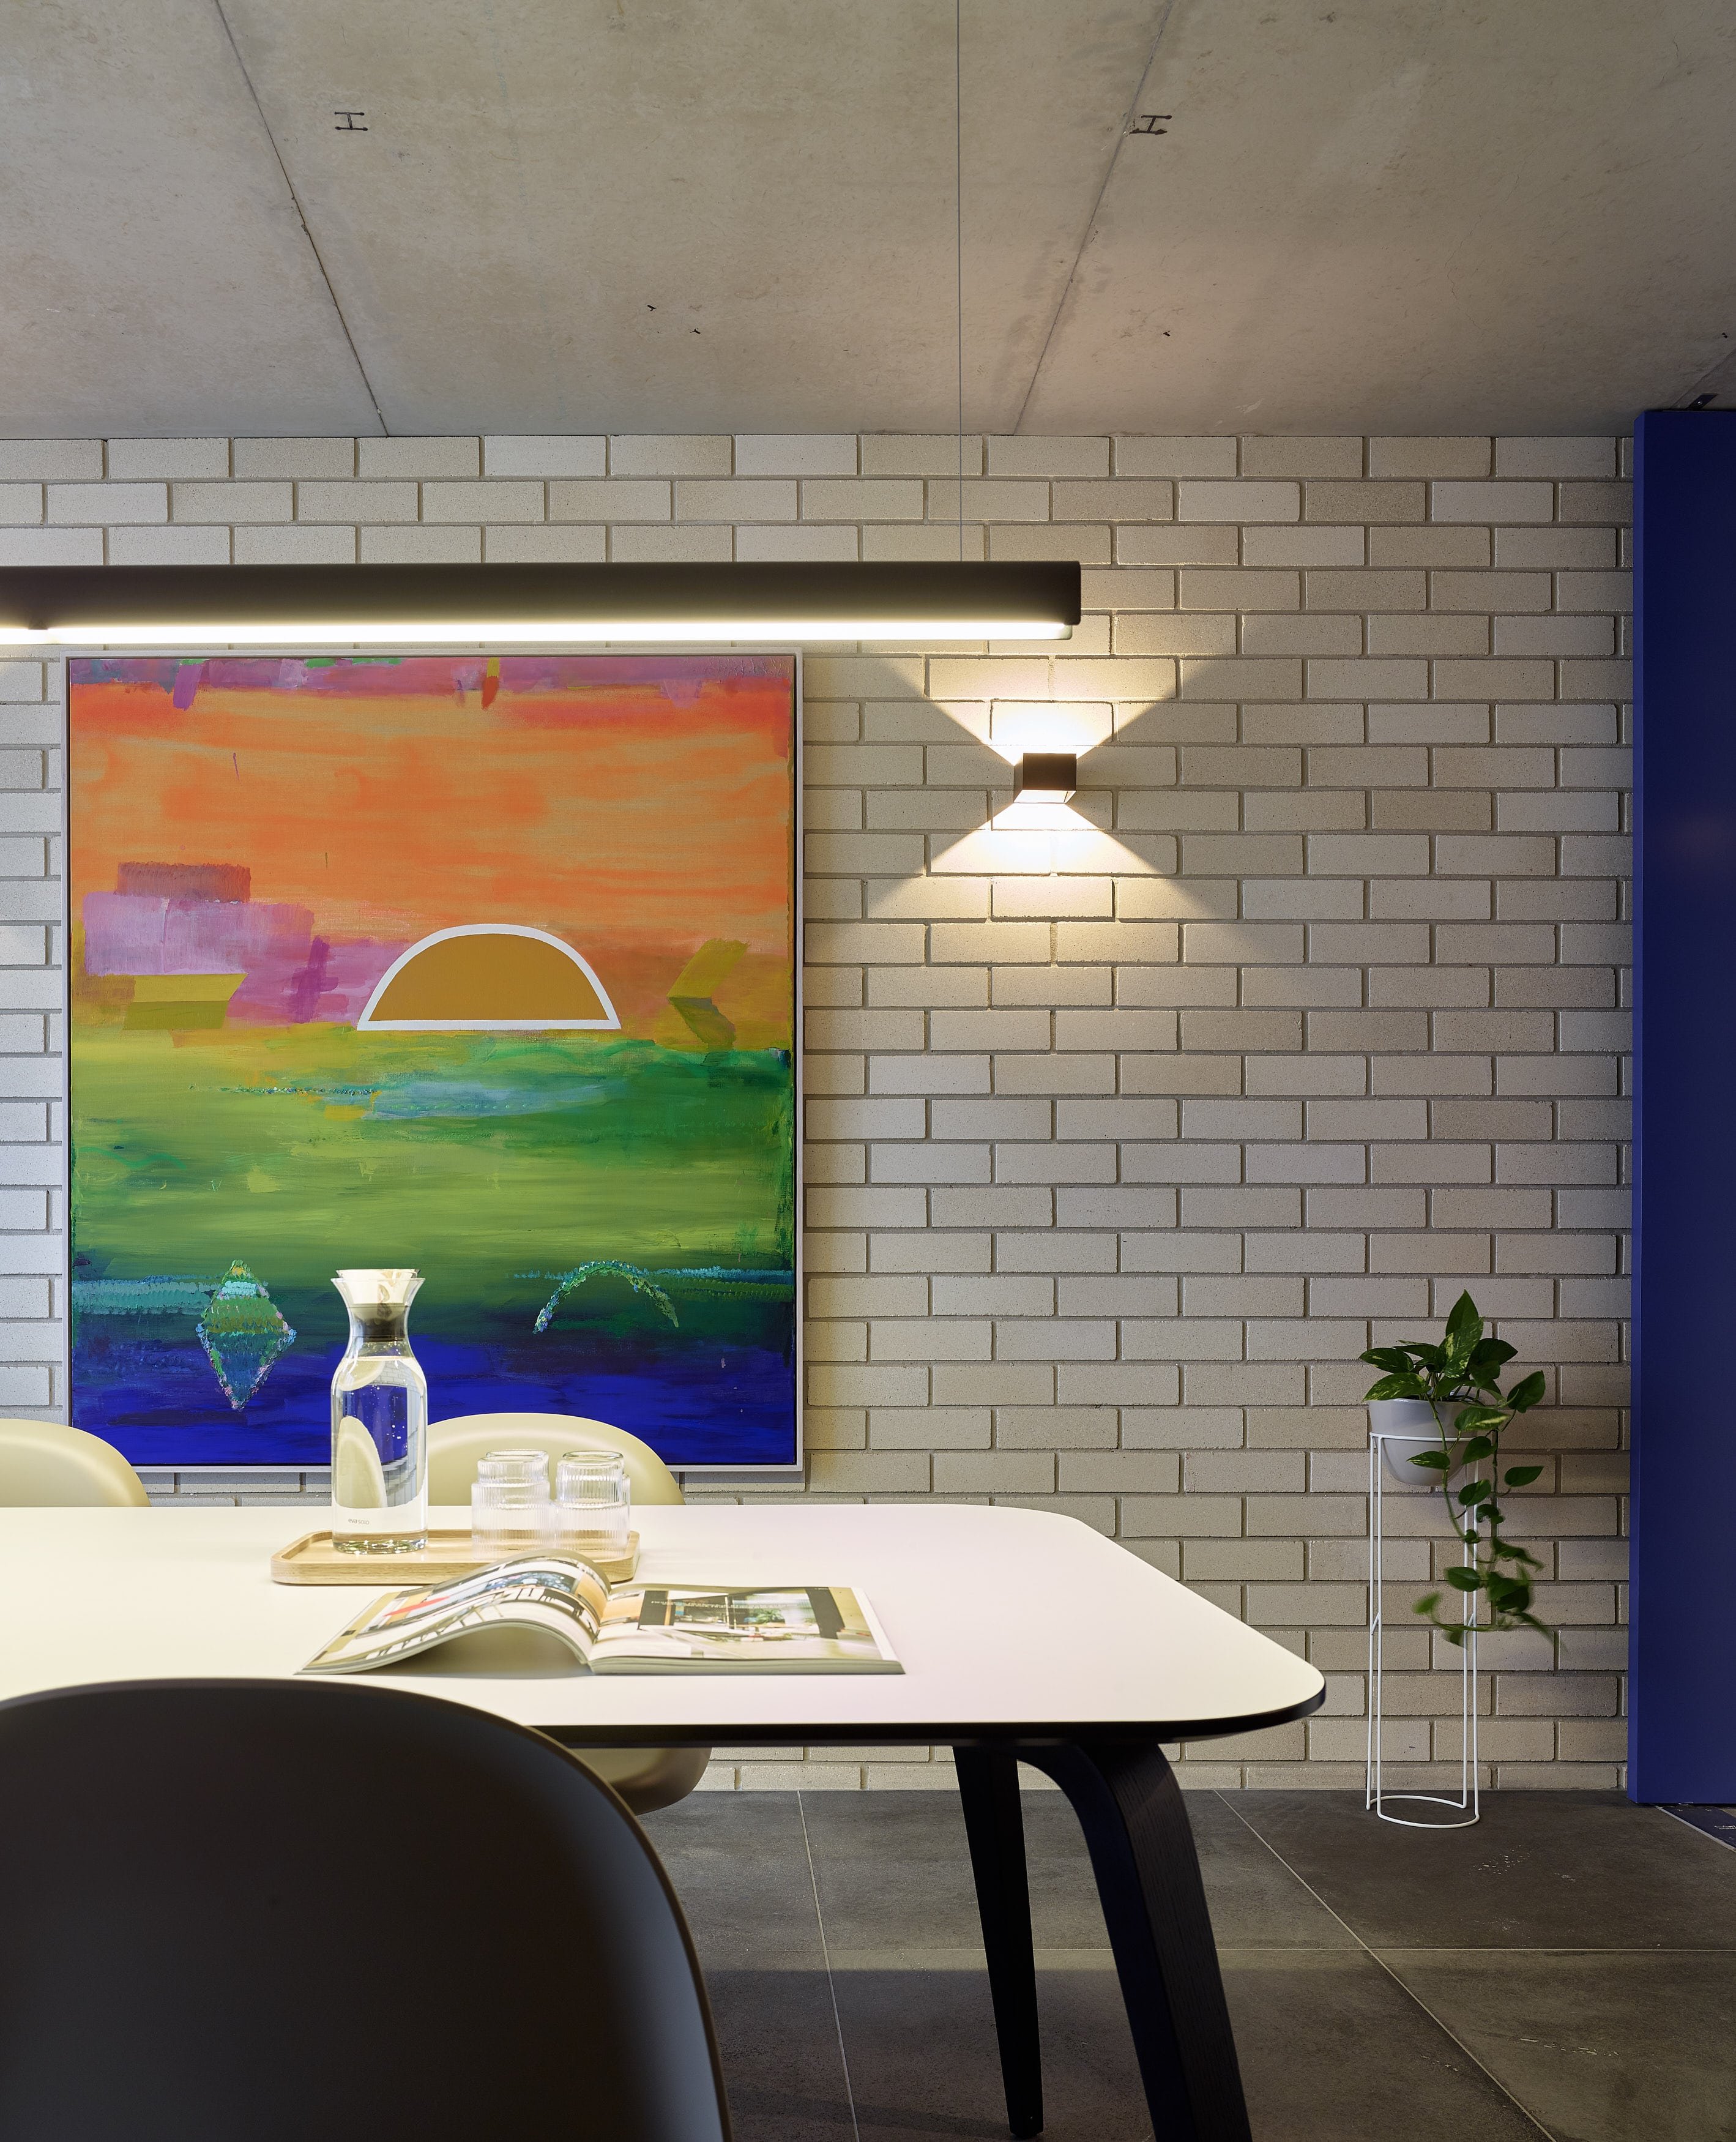 Gallery Of Sorrel Street By Shaun Lockyer Architects Local Australian Design And Interiors Paddington, Qld Image 25 Min